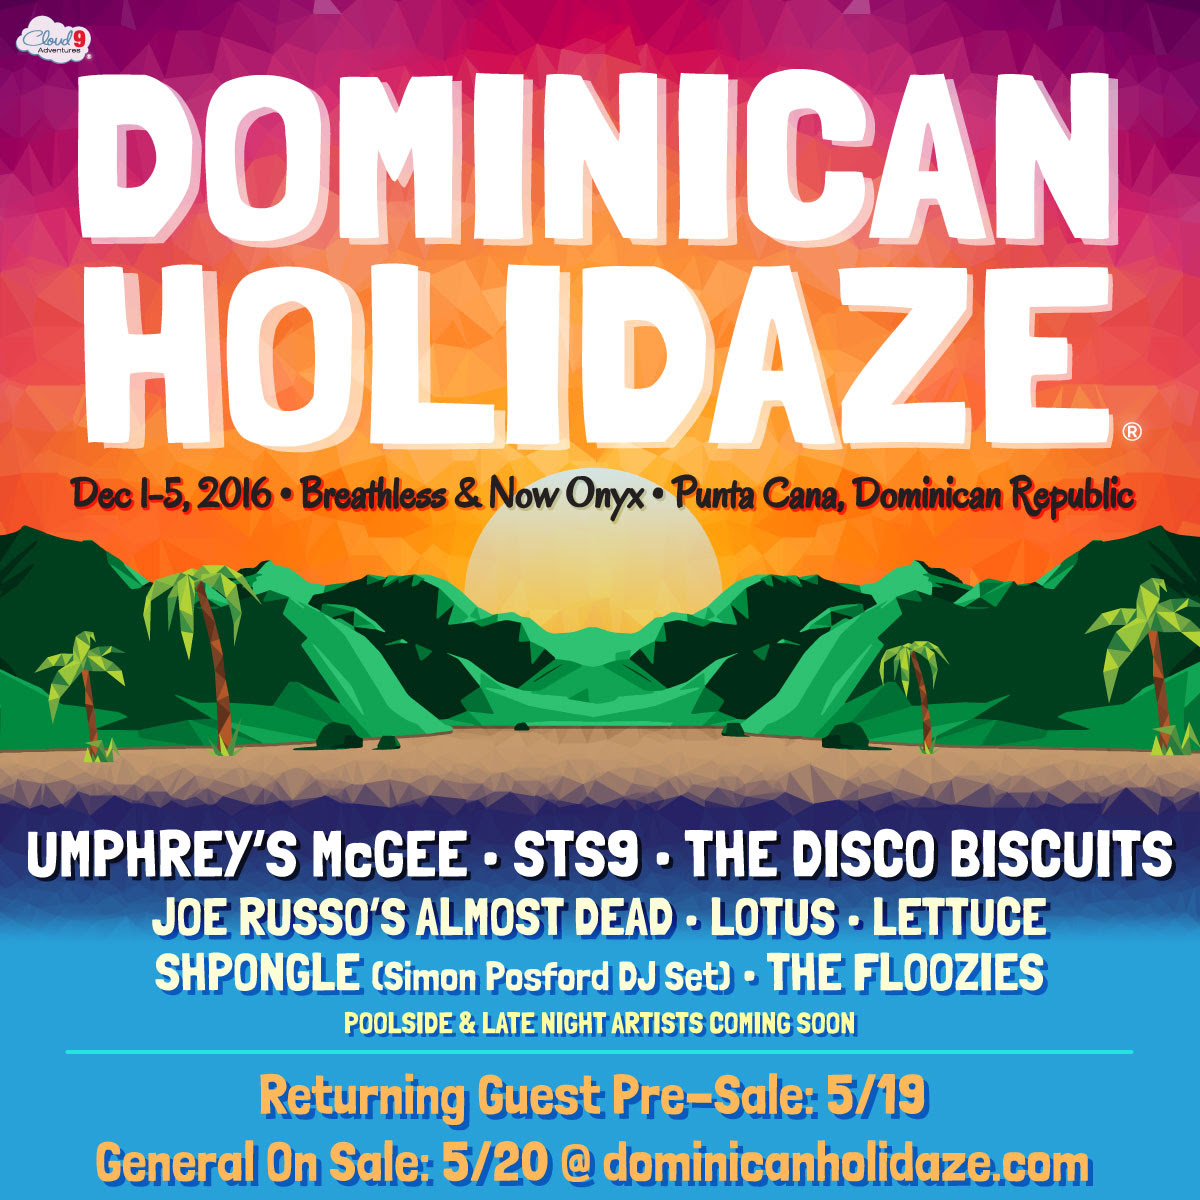 Dominican Holidaze 2016. Photo provided.